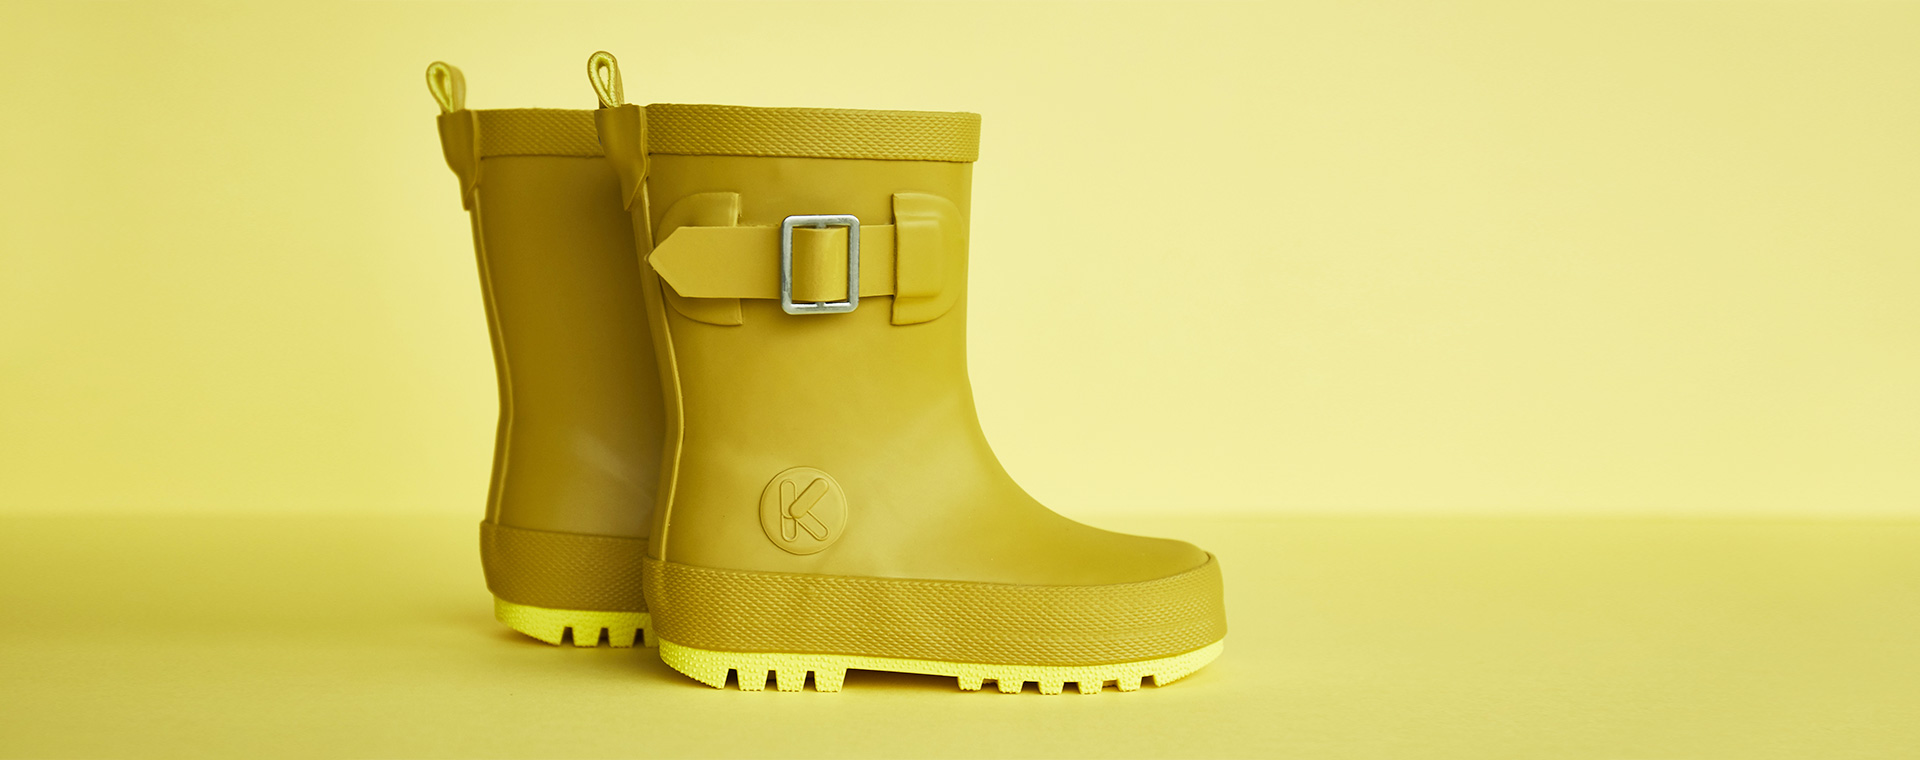 Dijon KIDLY Label Rain Boot